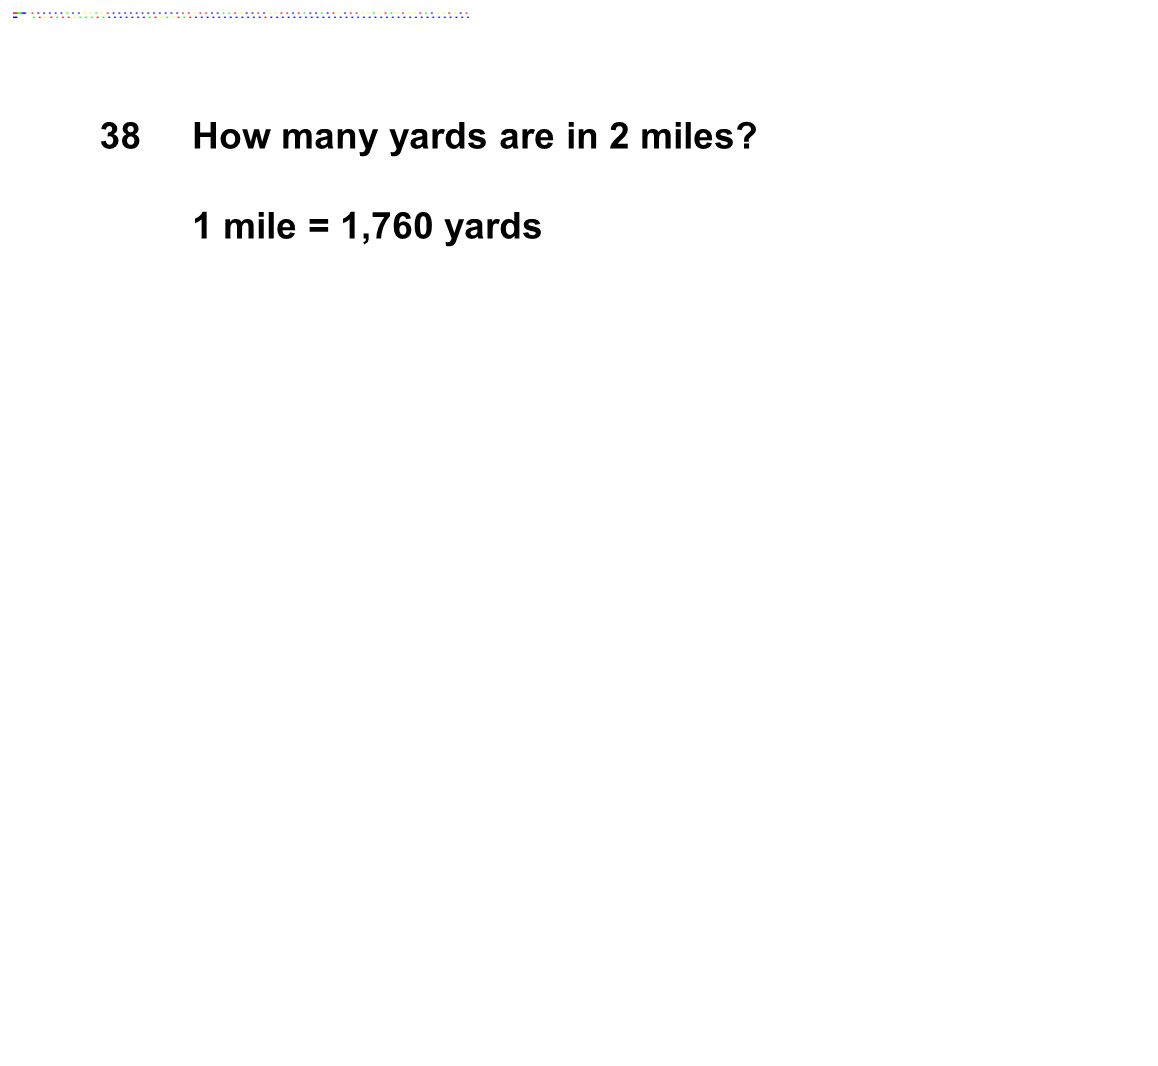 38How many yards are in 2 miles? 1 mile = 1,760 yards